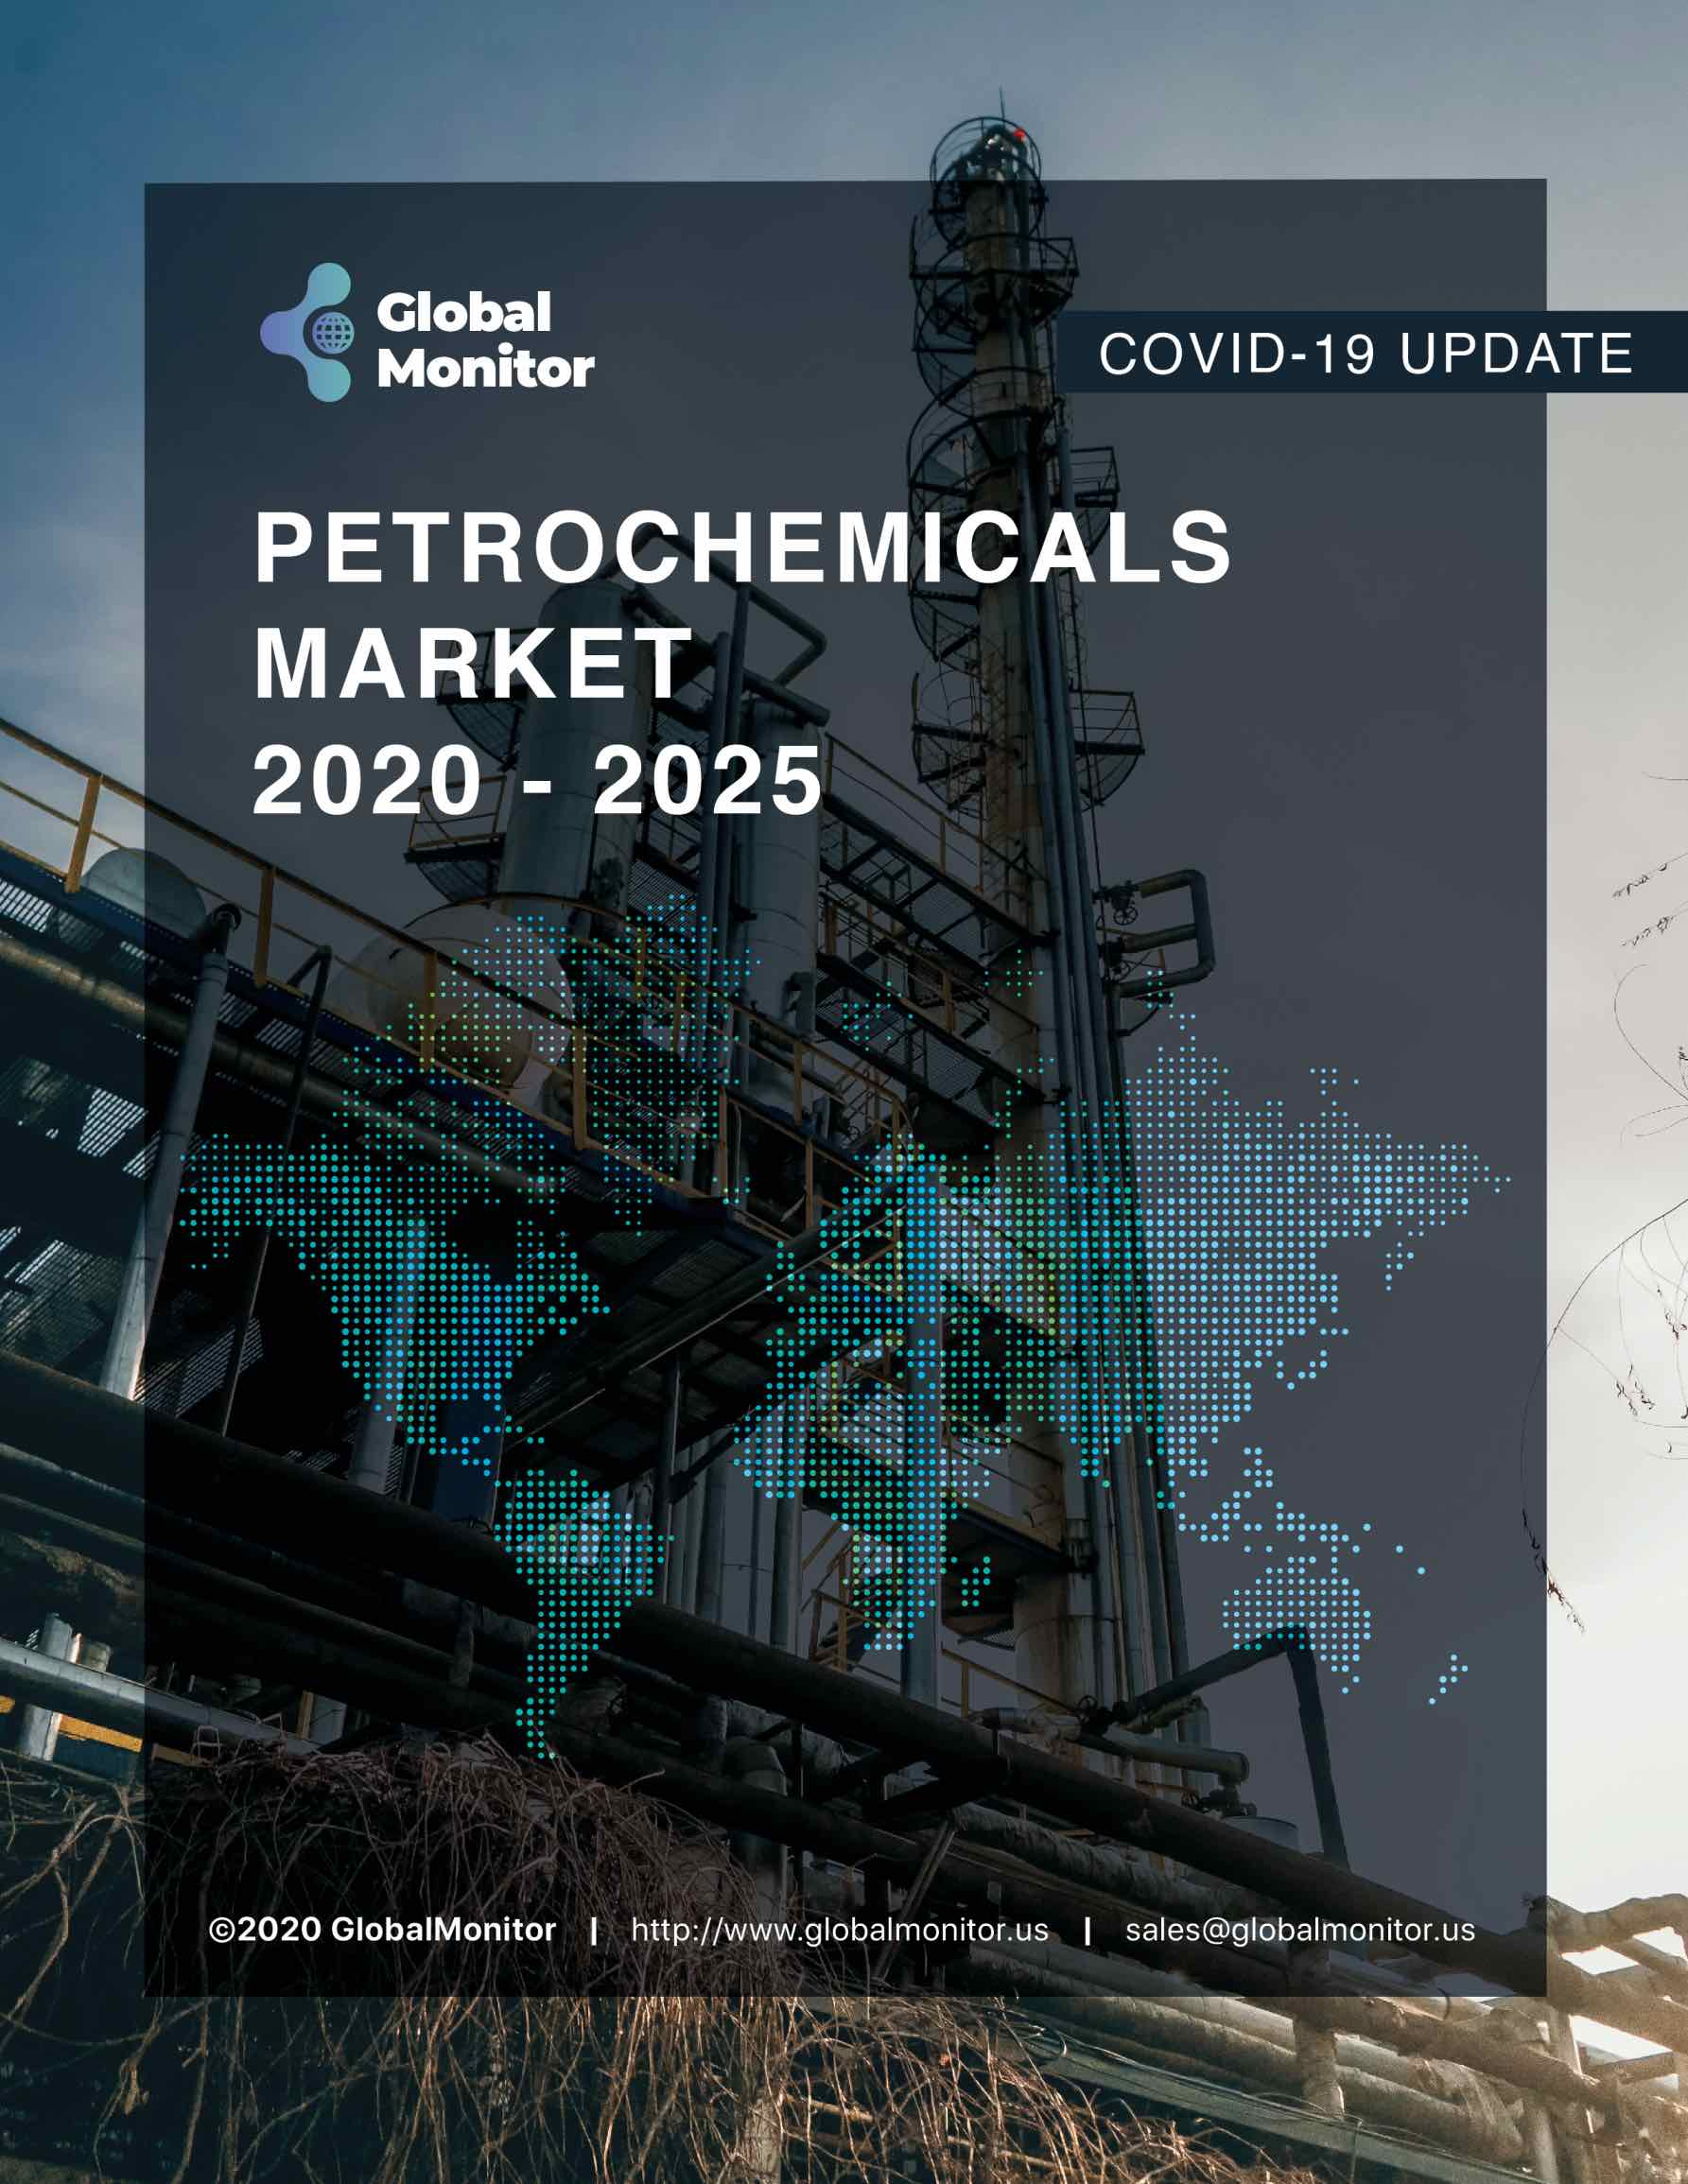 Spain Petrochemicals Market Report With COVID-19 Analysis (2020-2025)